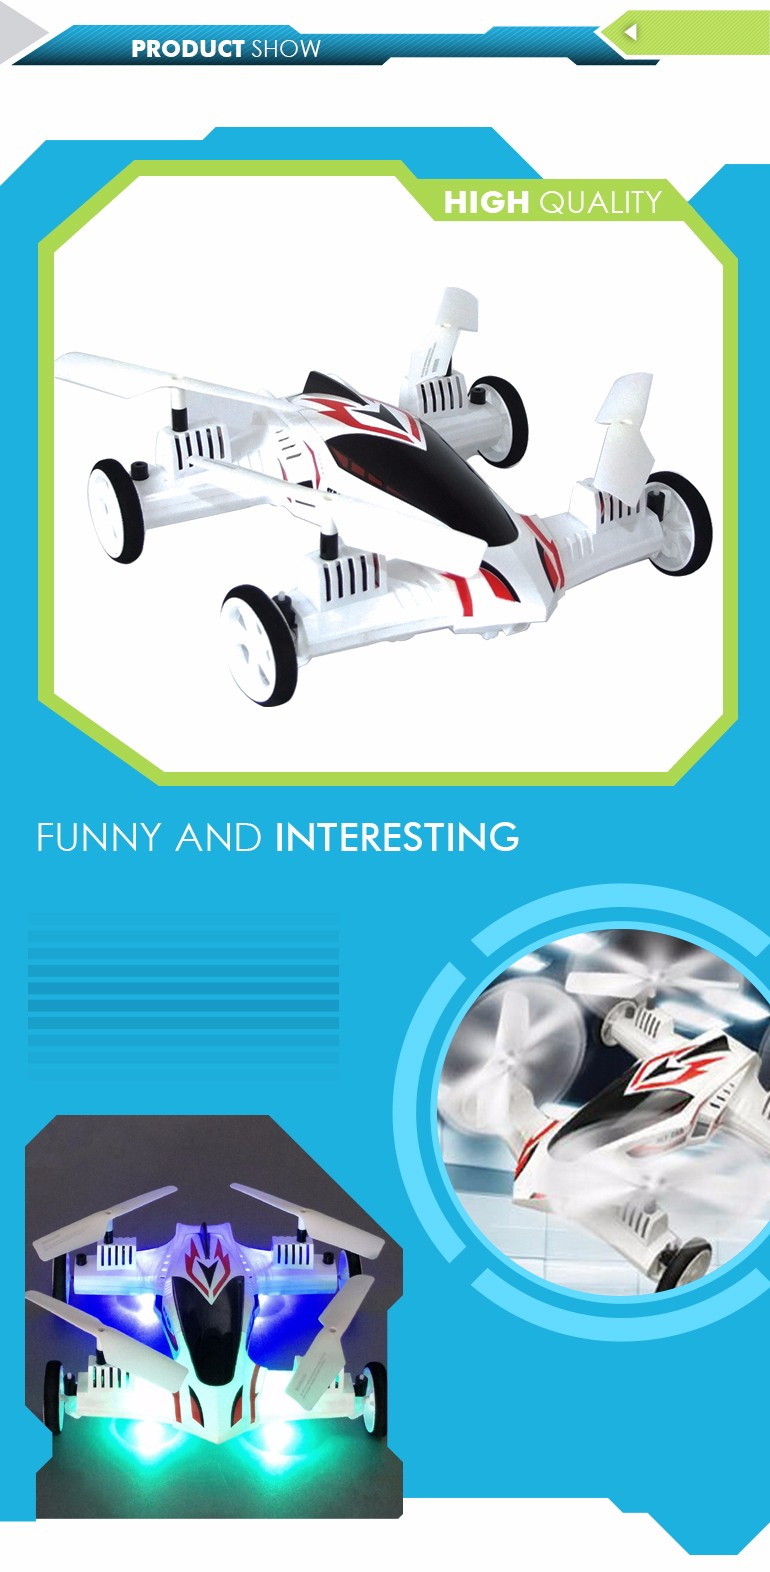 Hot sale low china price dual mode remote control helicopter car toy go drone for children